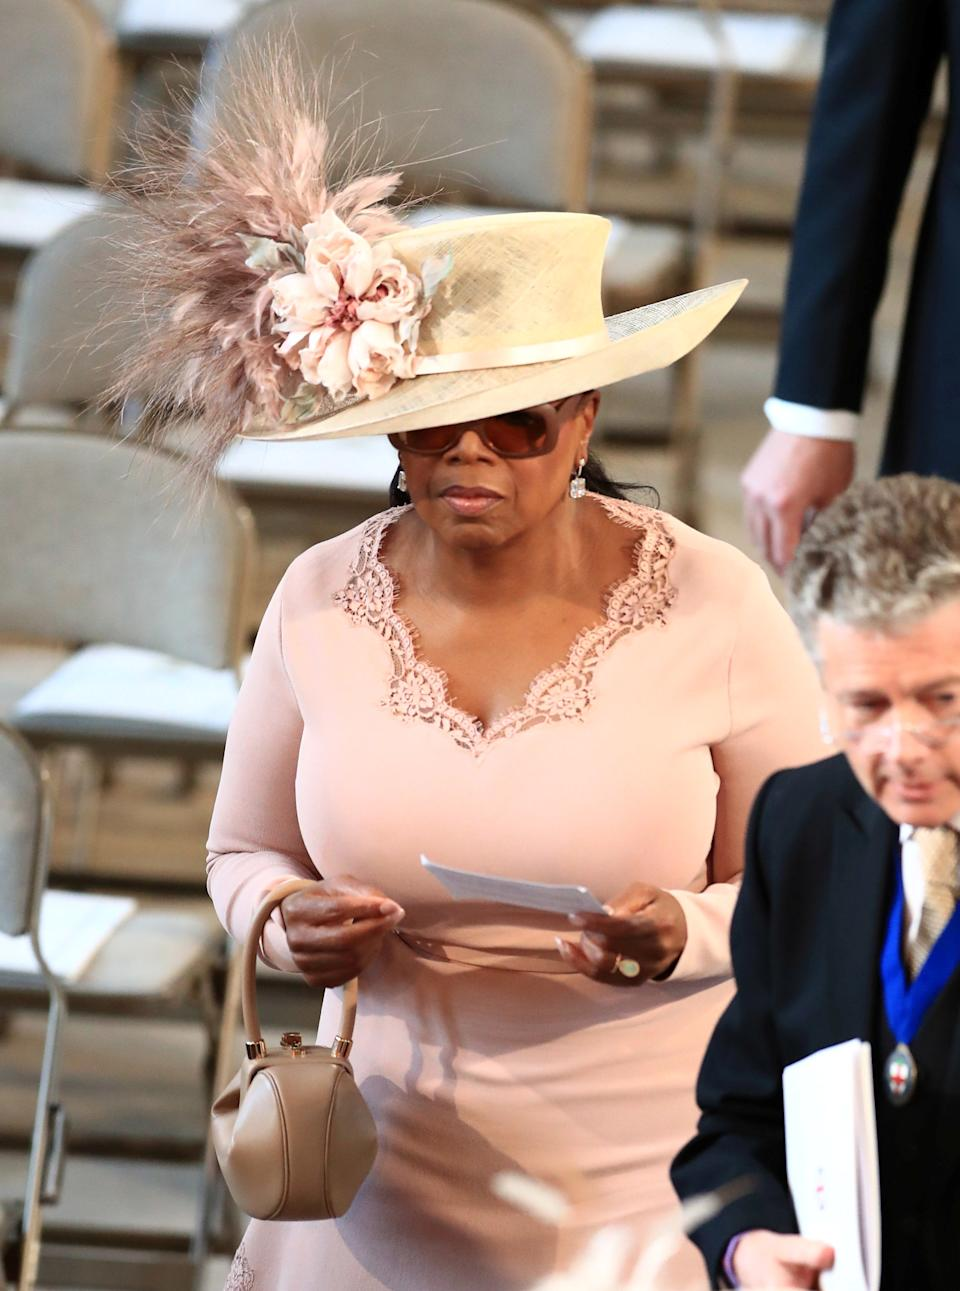 Oprah Winfrey arrives in St George's Chapel at Windsor Castle for the wedding of Prince Harry and Meghan Markle.  Saturday May 19, 2018.  Danny Lawson/Pool via REUTERS